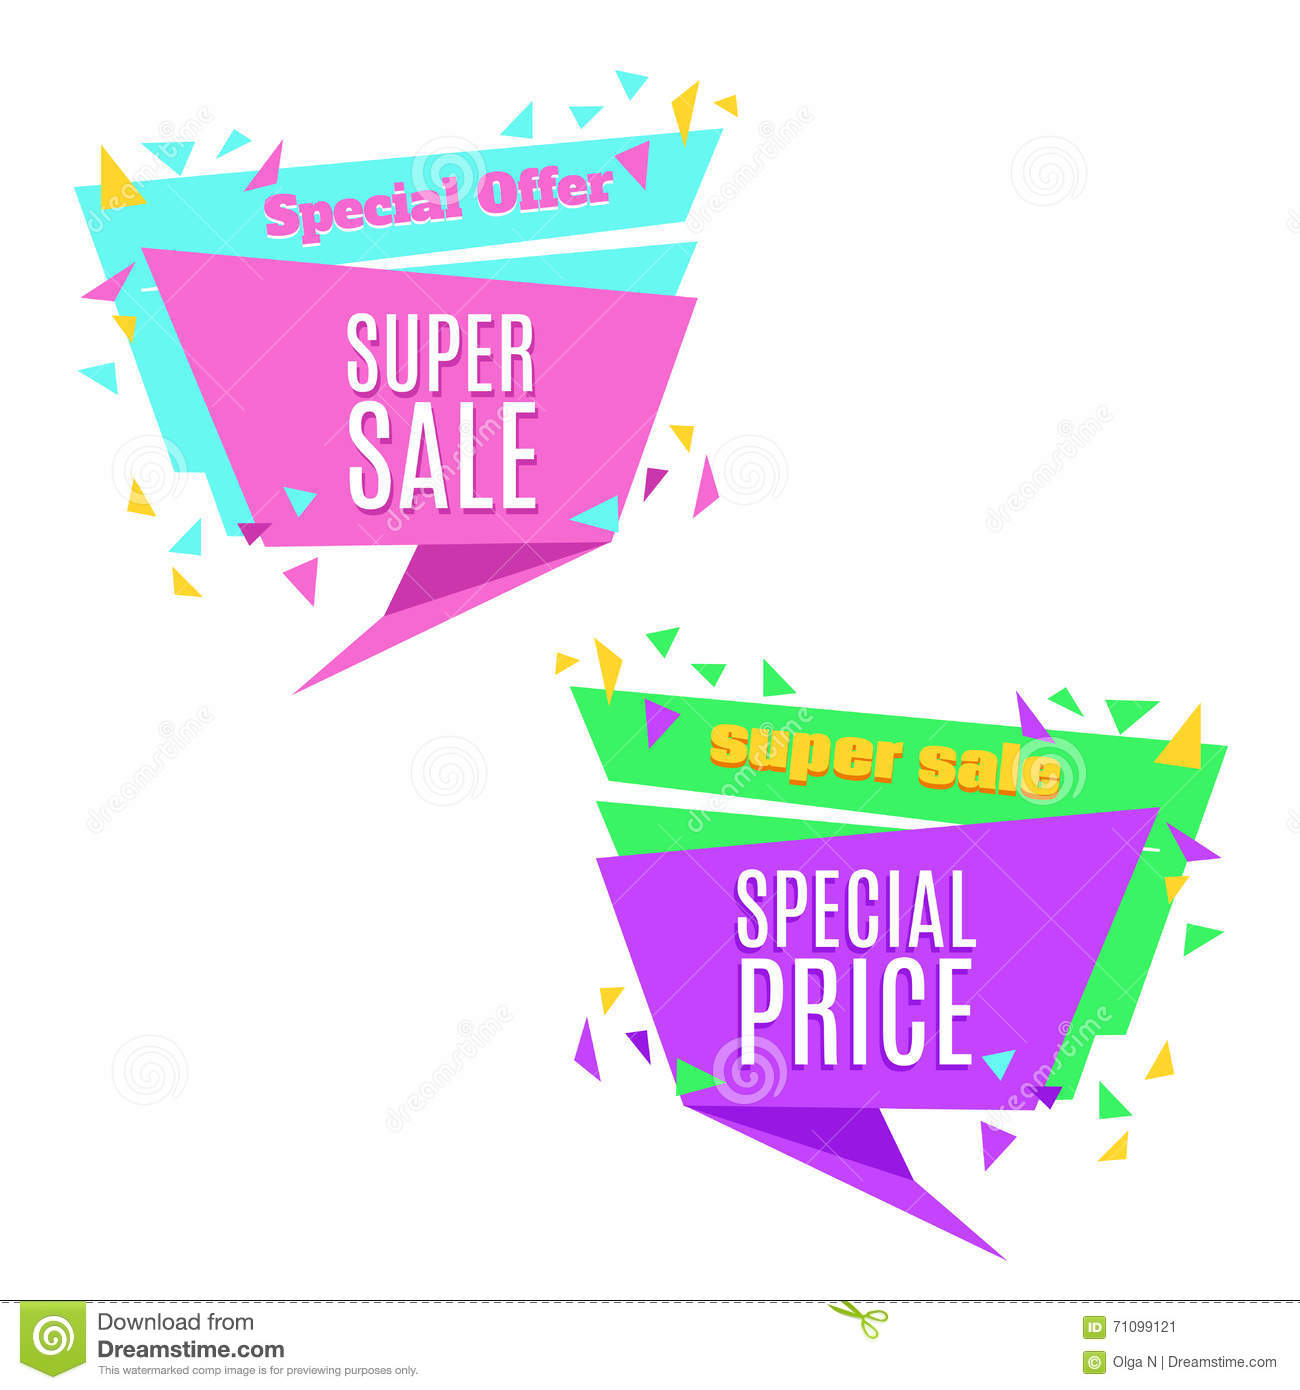 Price tag template free printable blank price tag template free - Free Price Tag Template Big Sale Price Tag Creative Vector Free Vector In Encapsulated